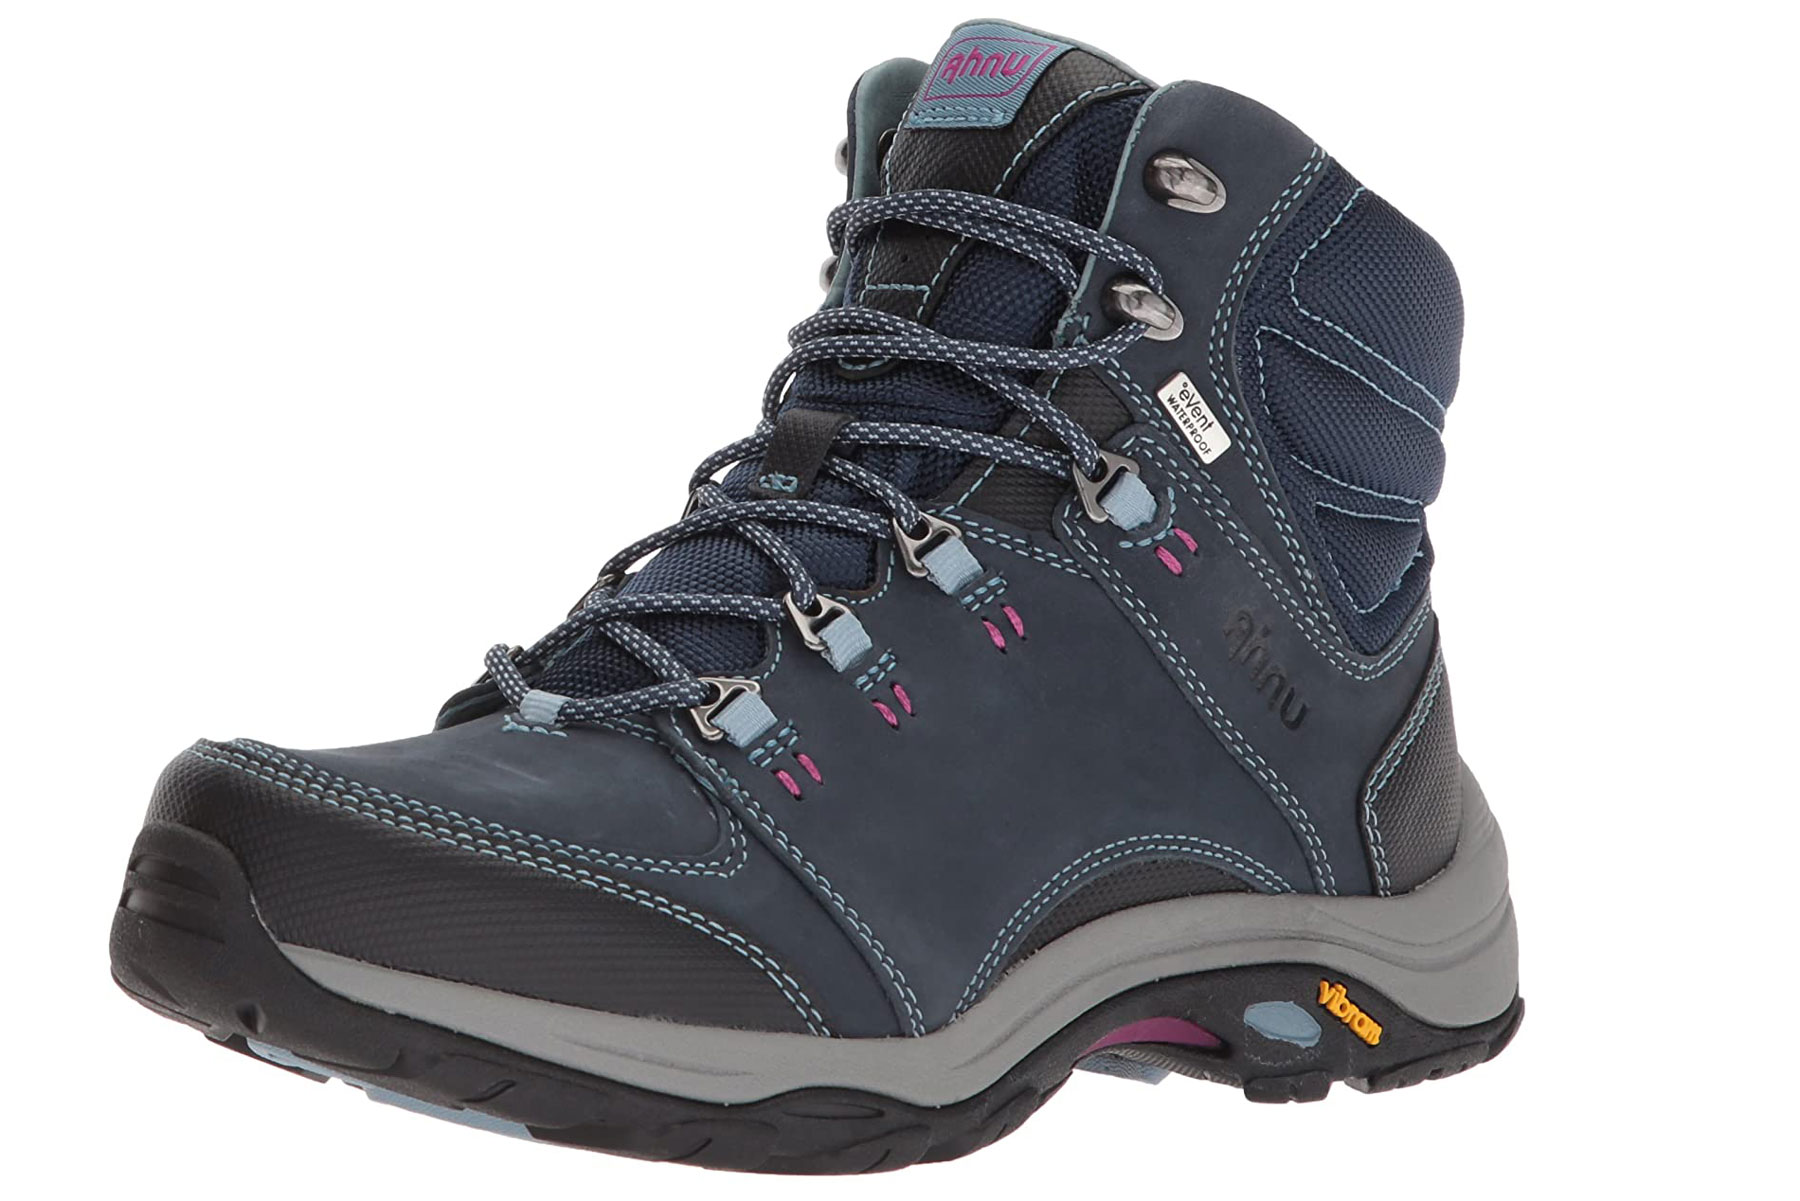 Navy hiking boots